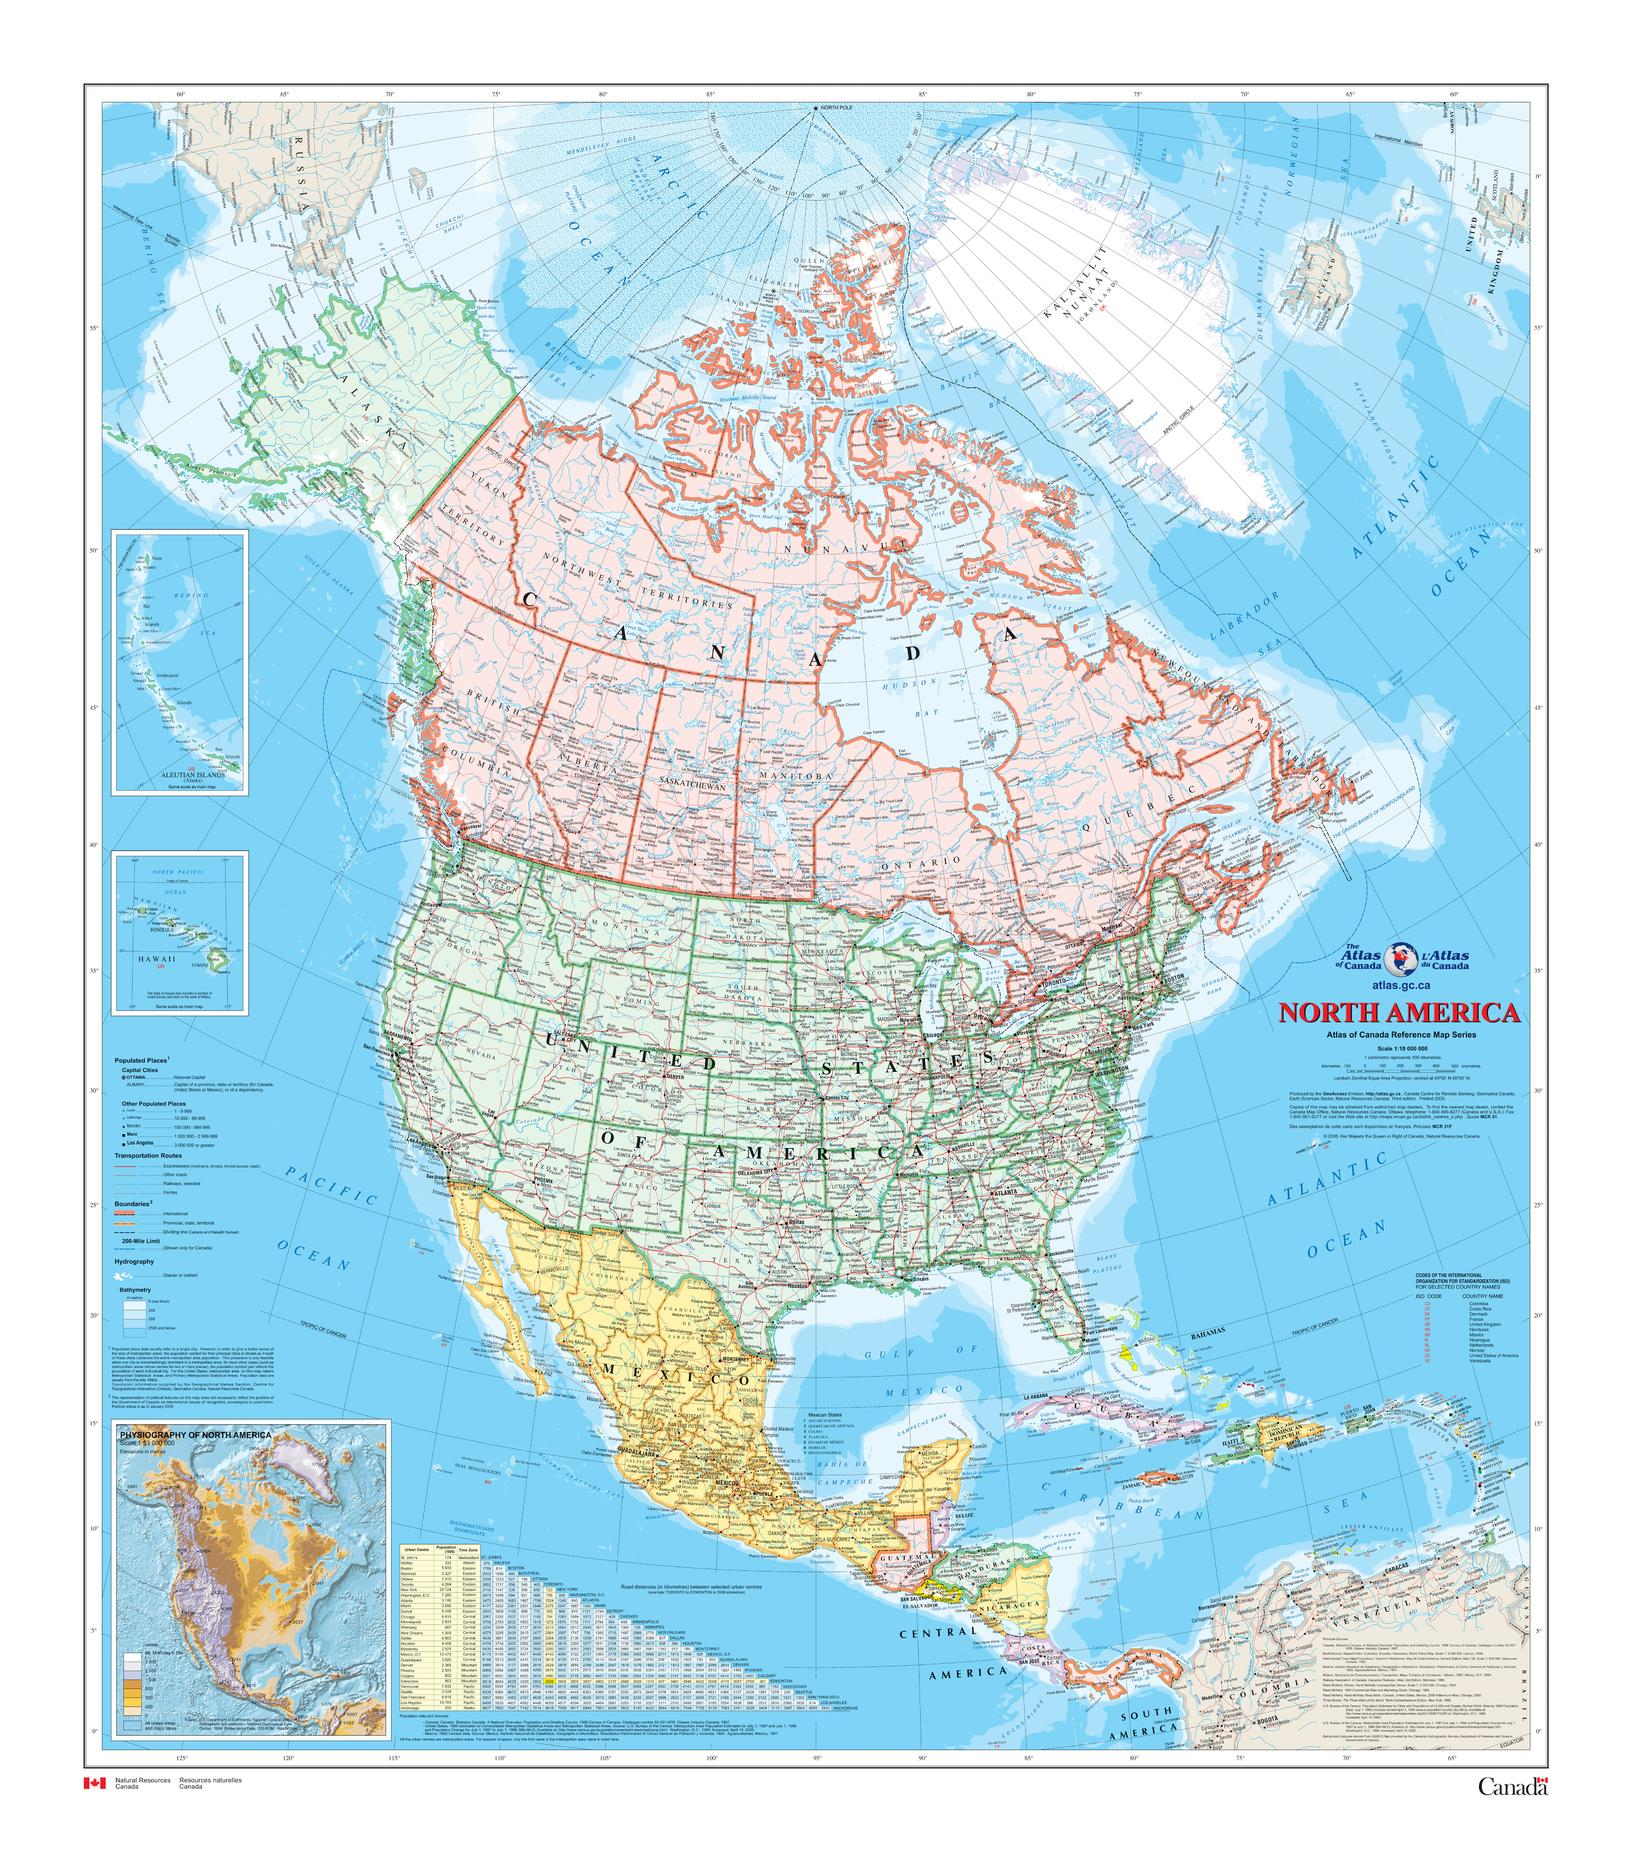 MapSherpa Natural Resources Canada Atlas Of Canada Maps - Relief map of canada